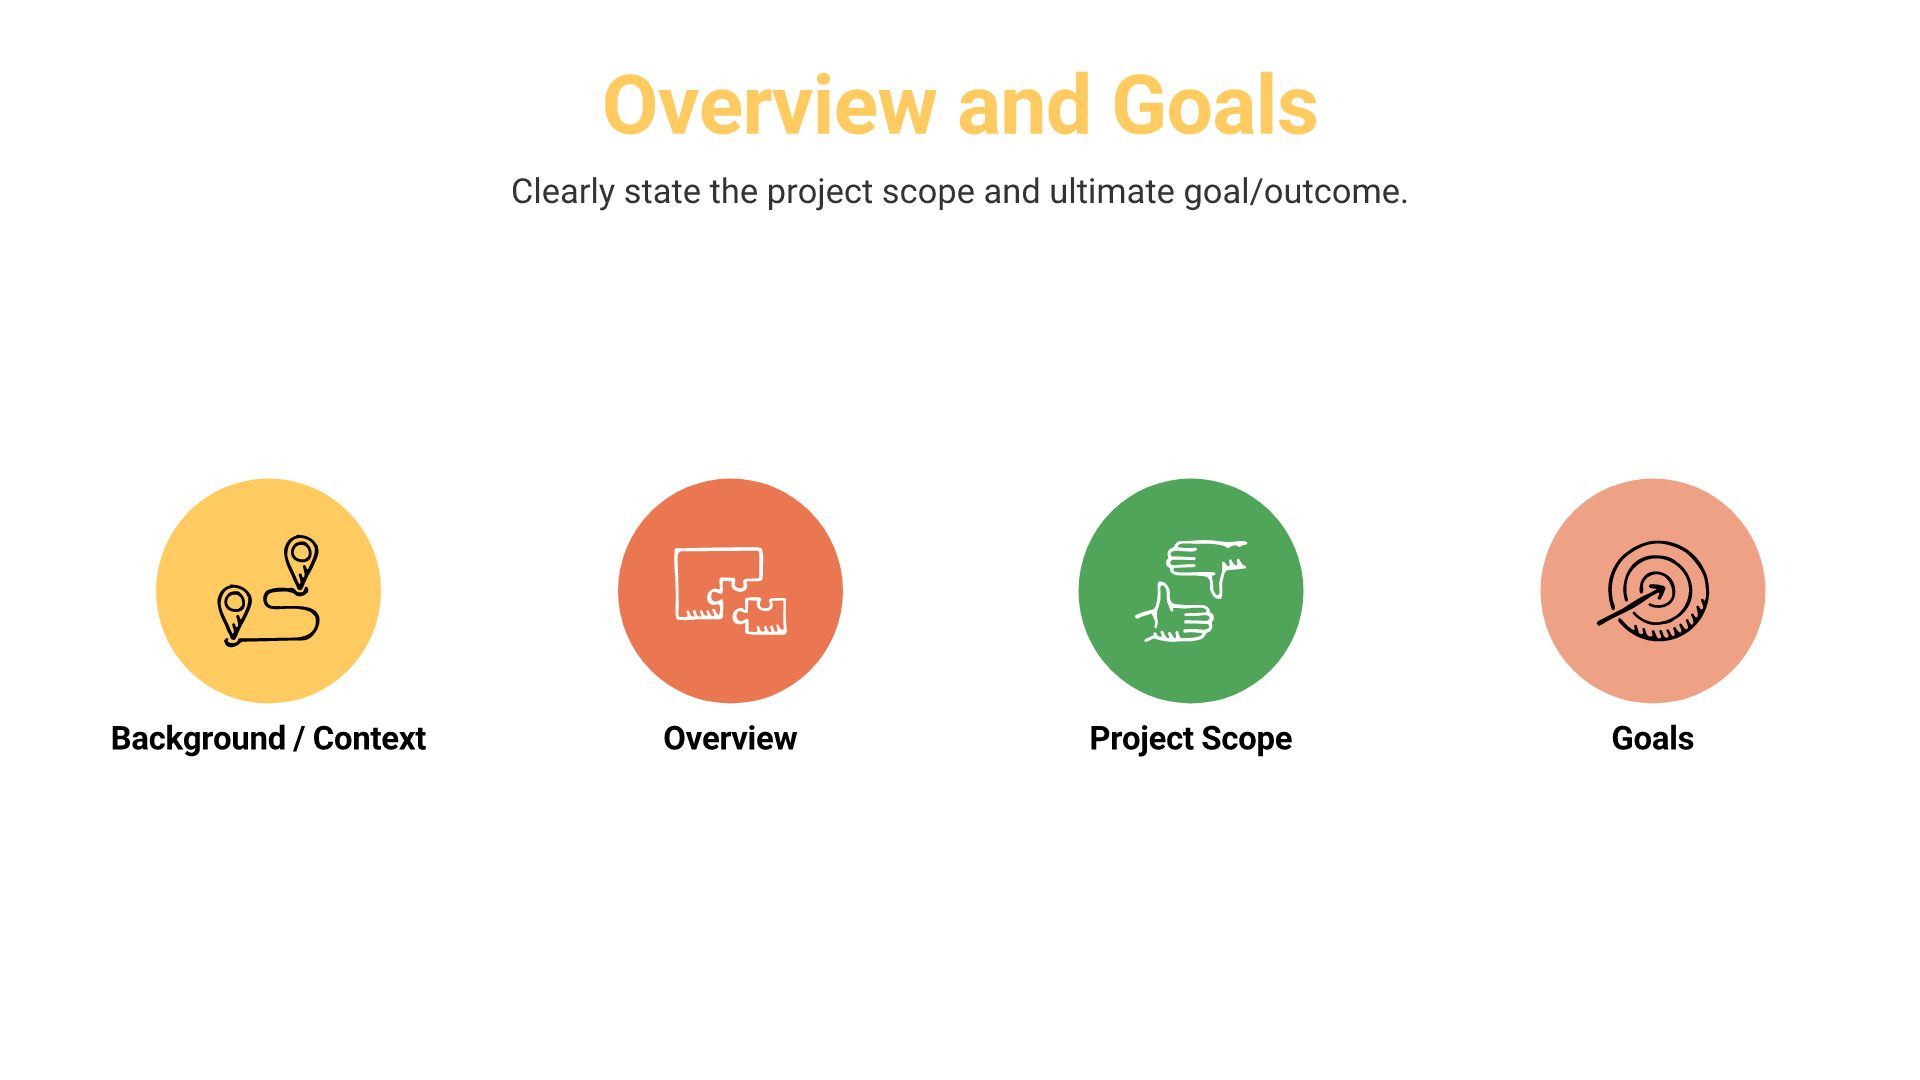 Overview and Goals